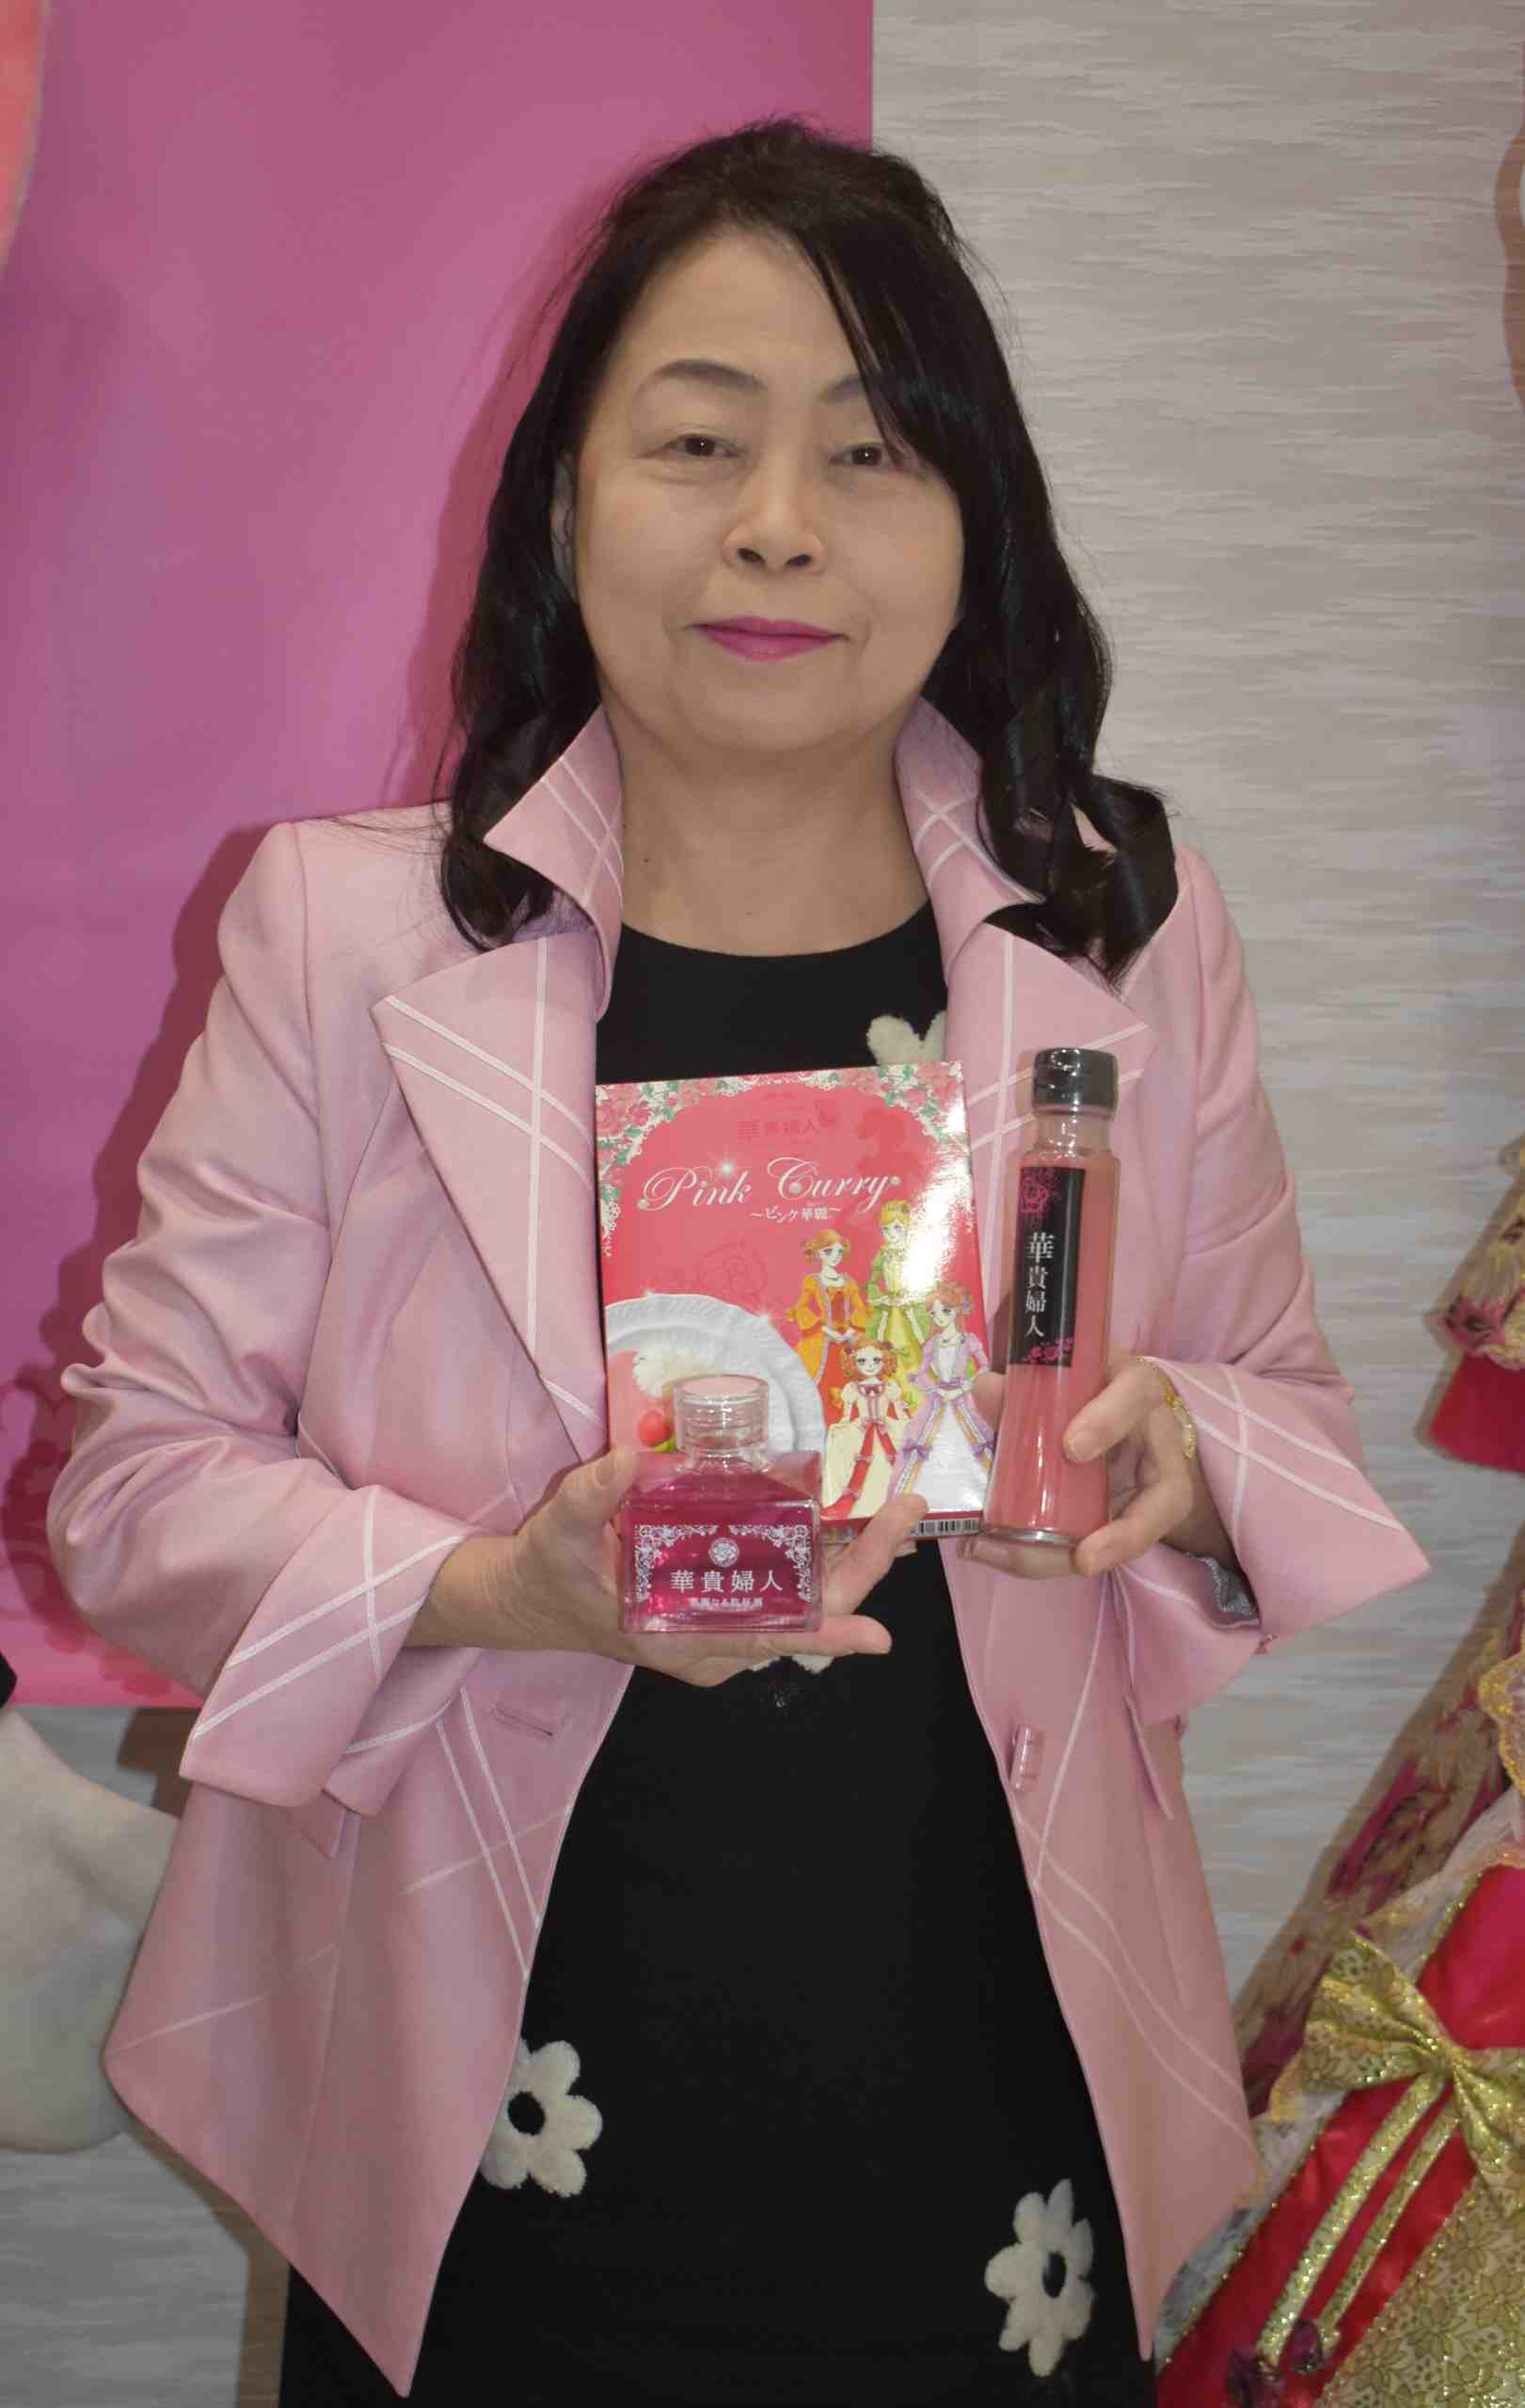 Pink products from Tottori prefecture Japan 005